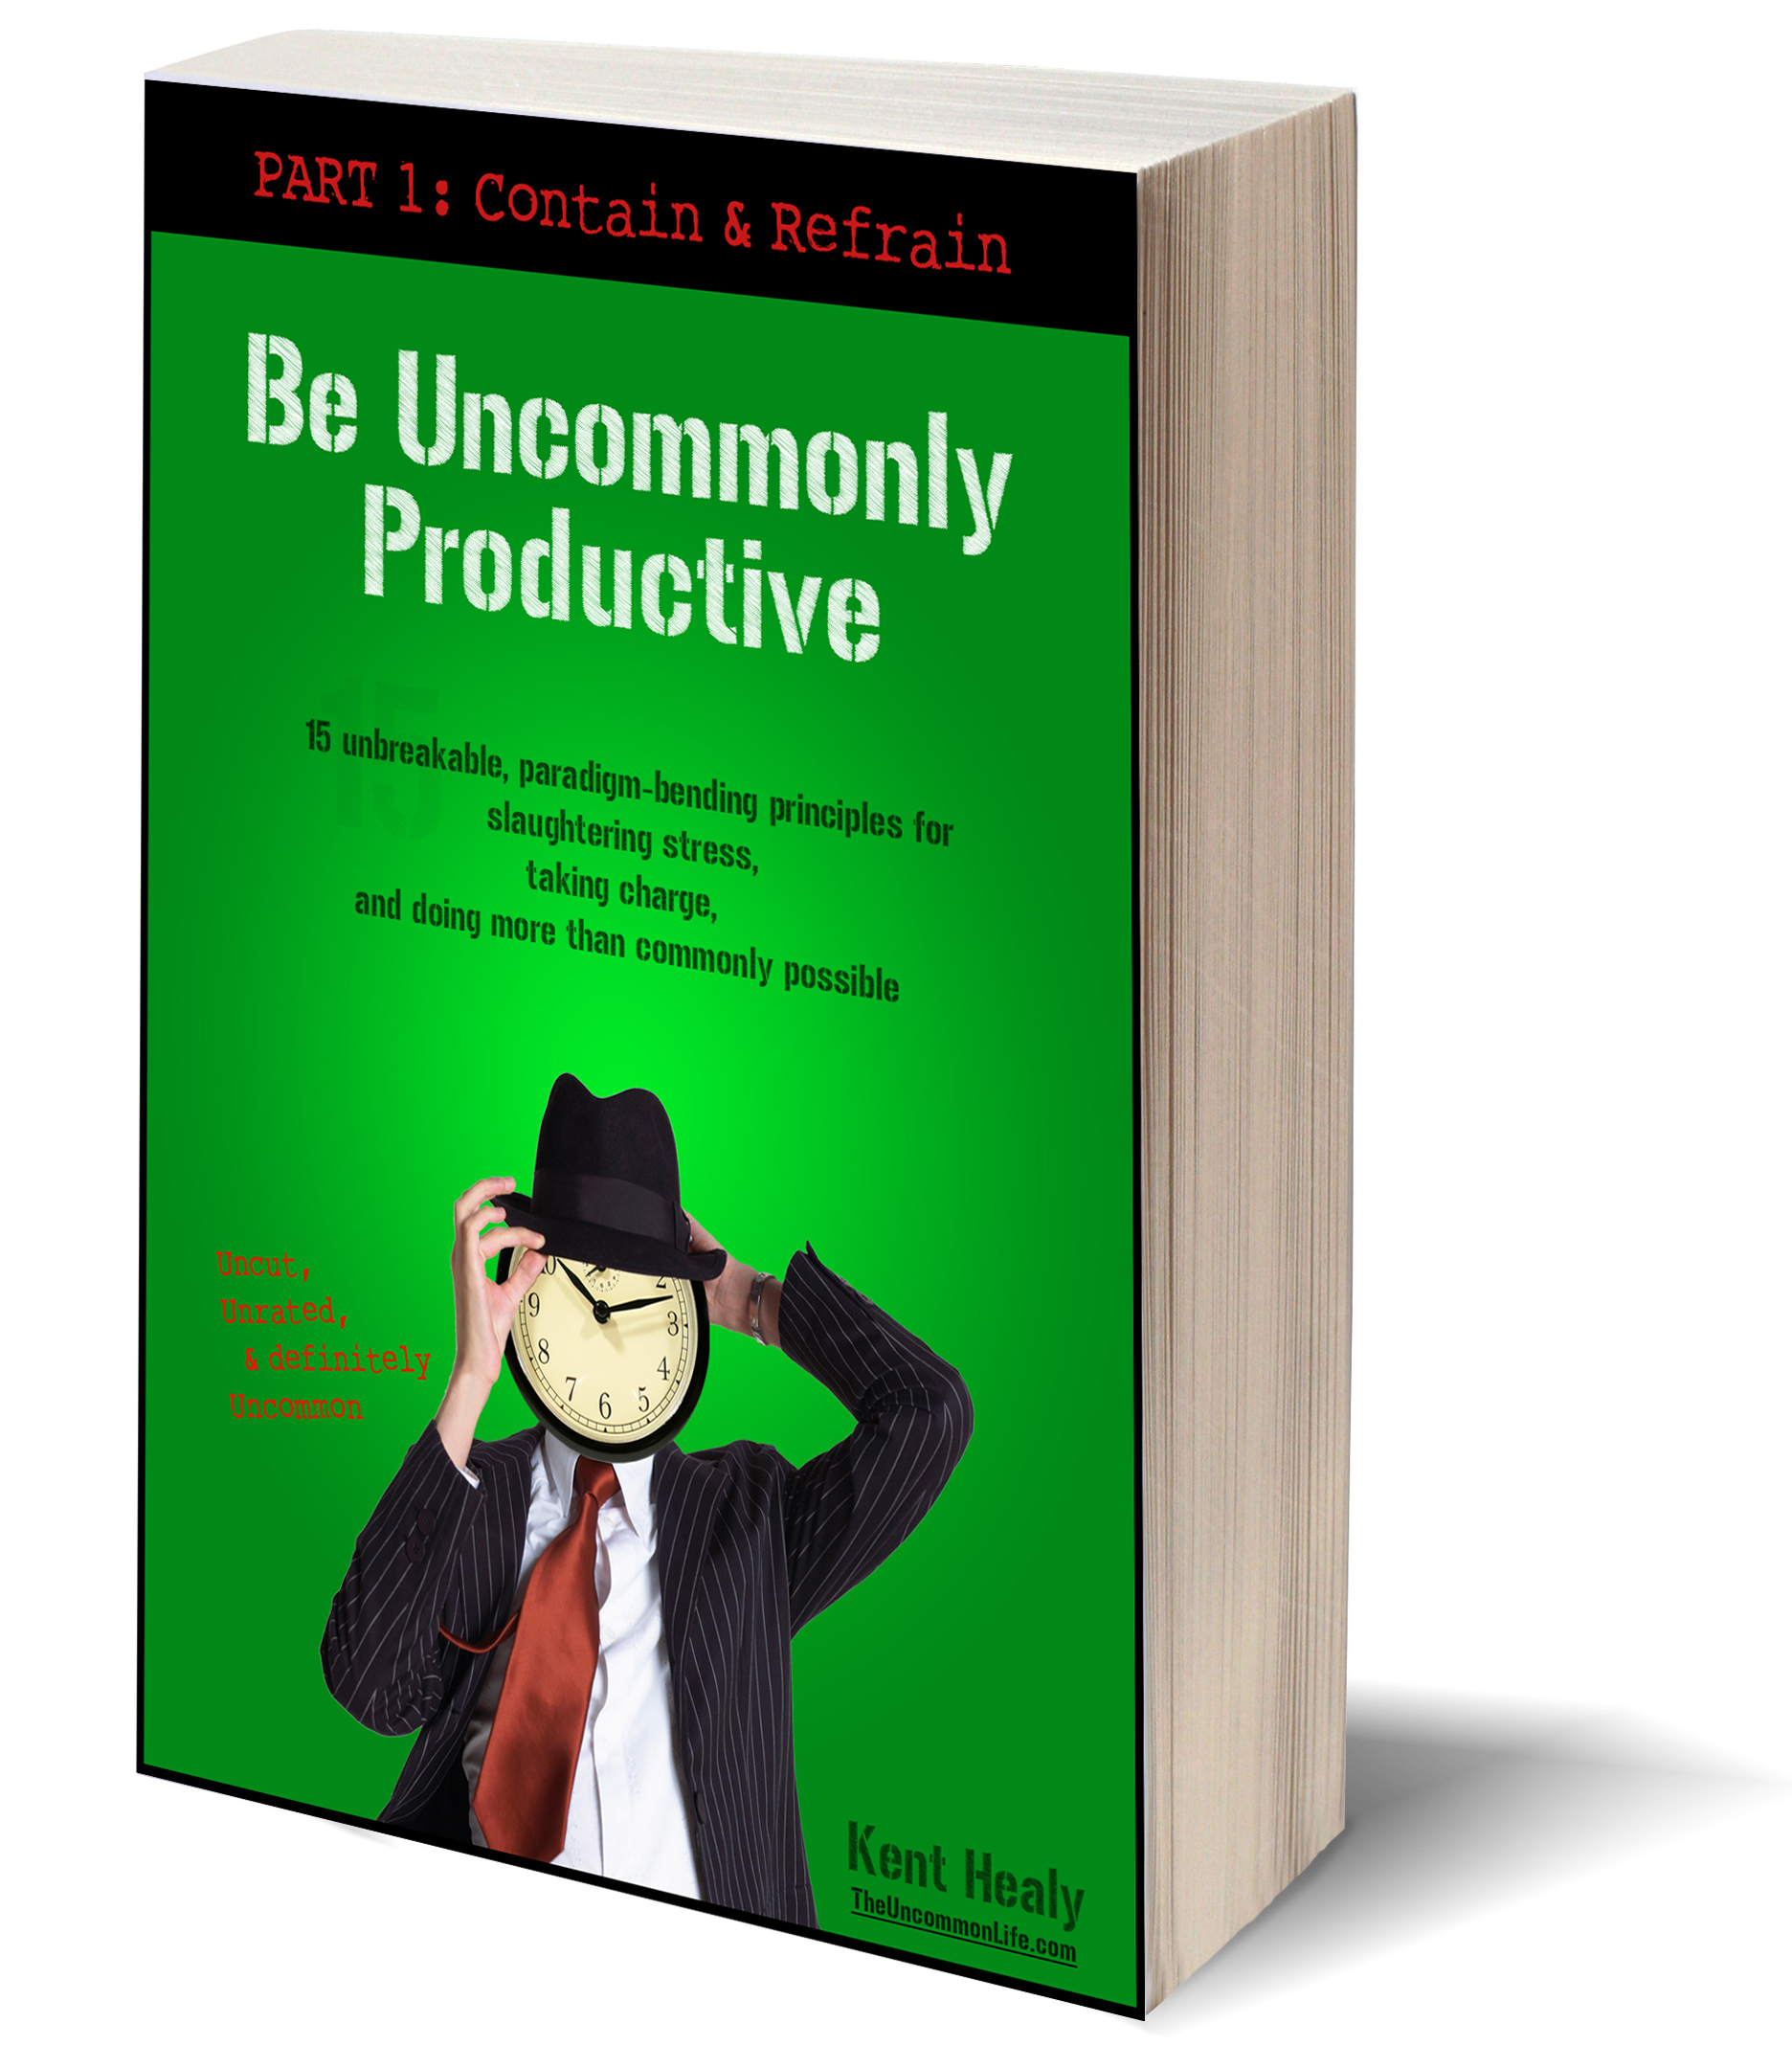 Be Uncommonly Productive